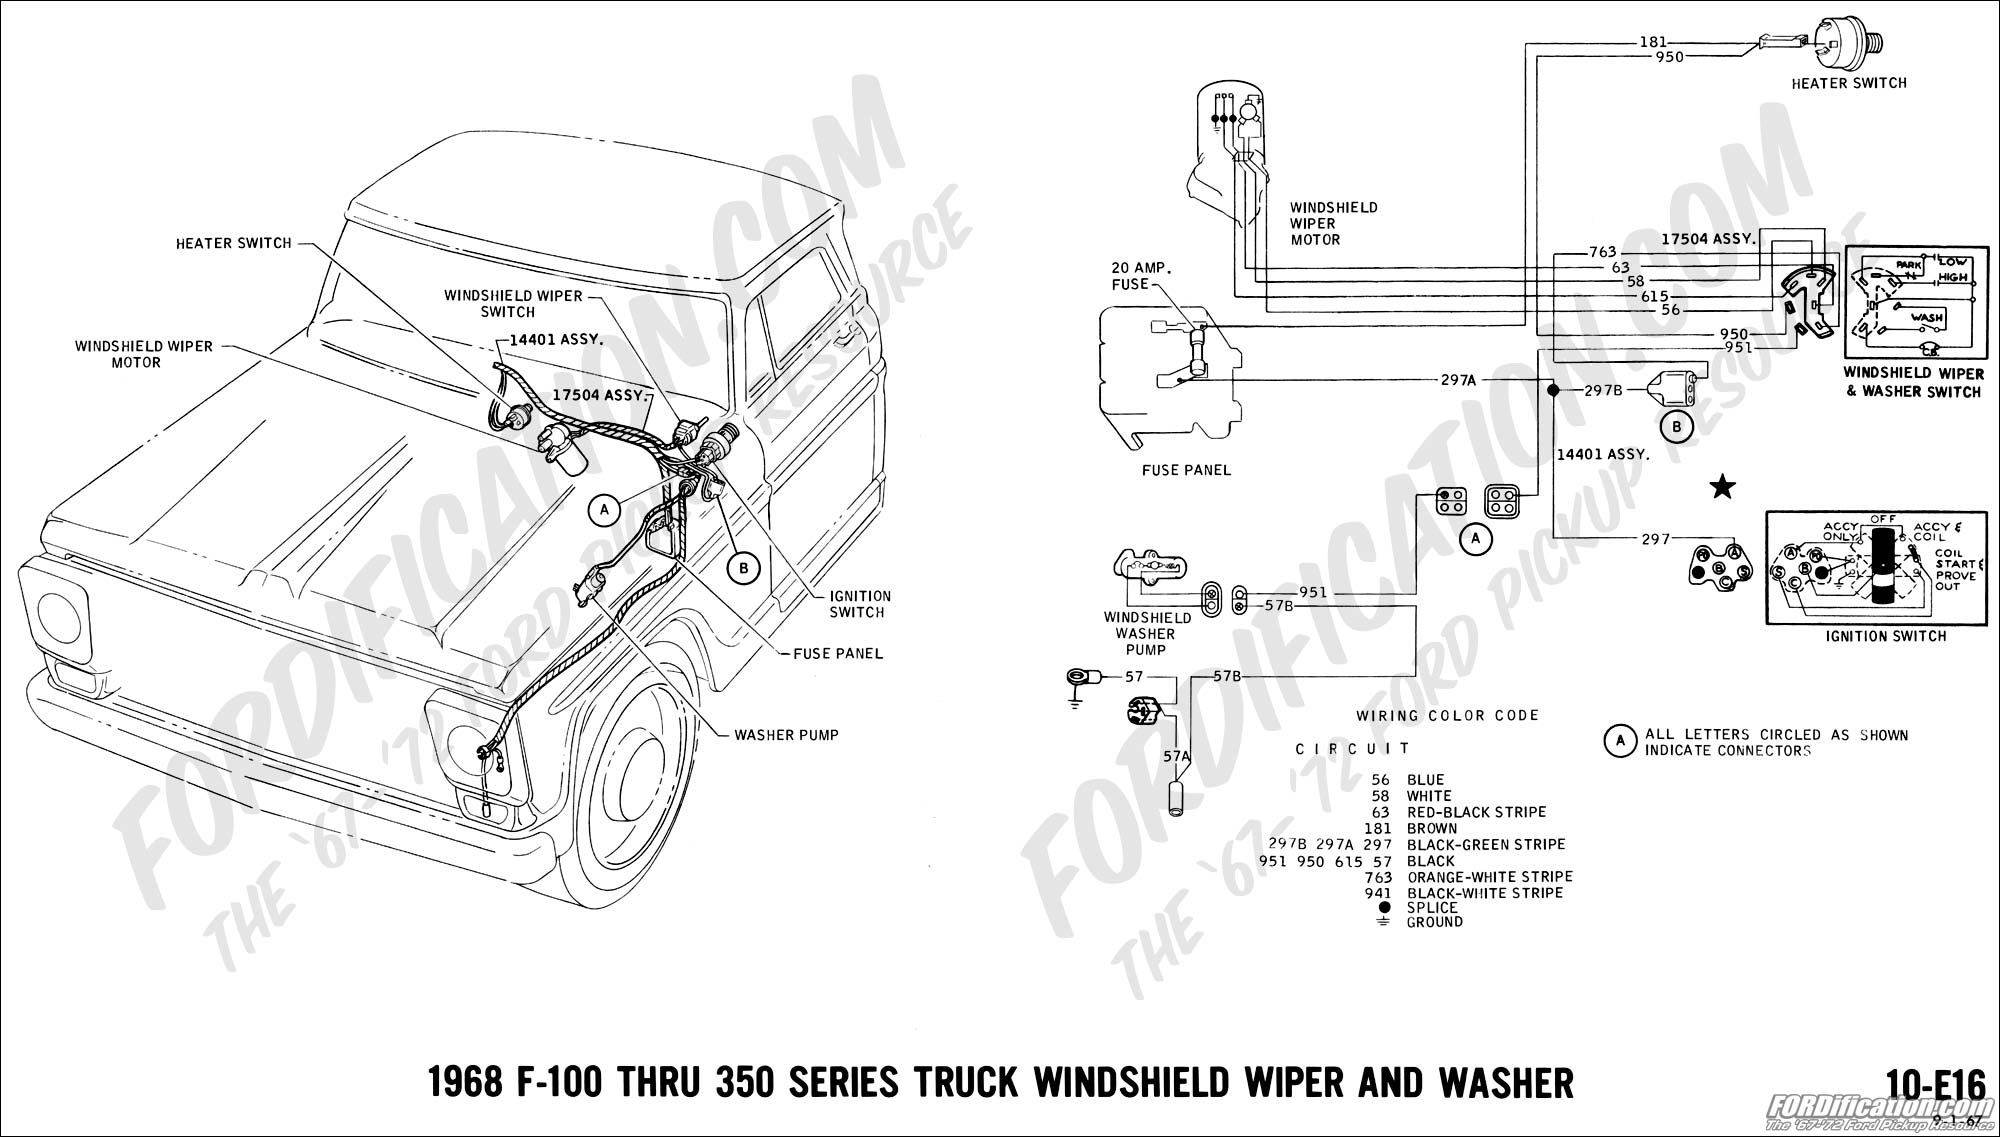 Wiring Harness Drawing For 67 Ford F100 Library 1994 F150 Truck Technical Drawings And Schematics Section H 1966 Diagram Body 1967